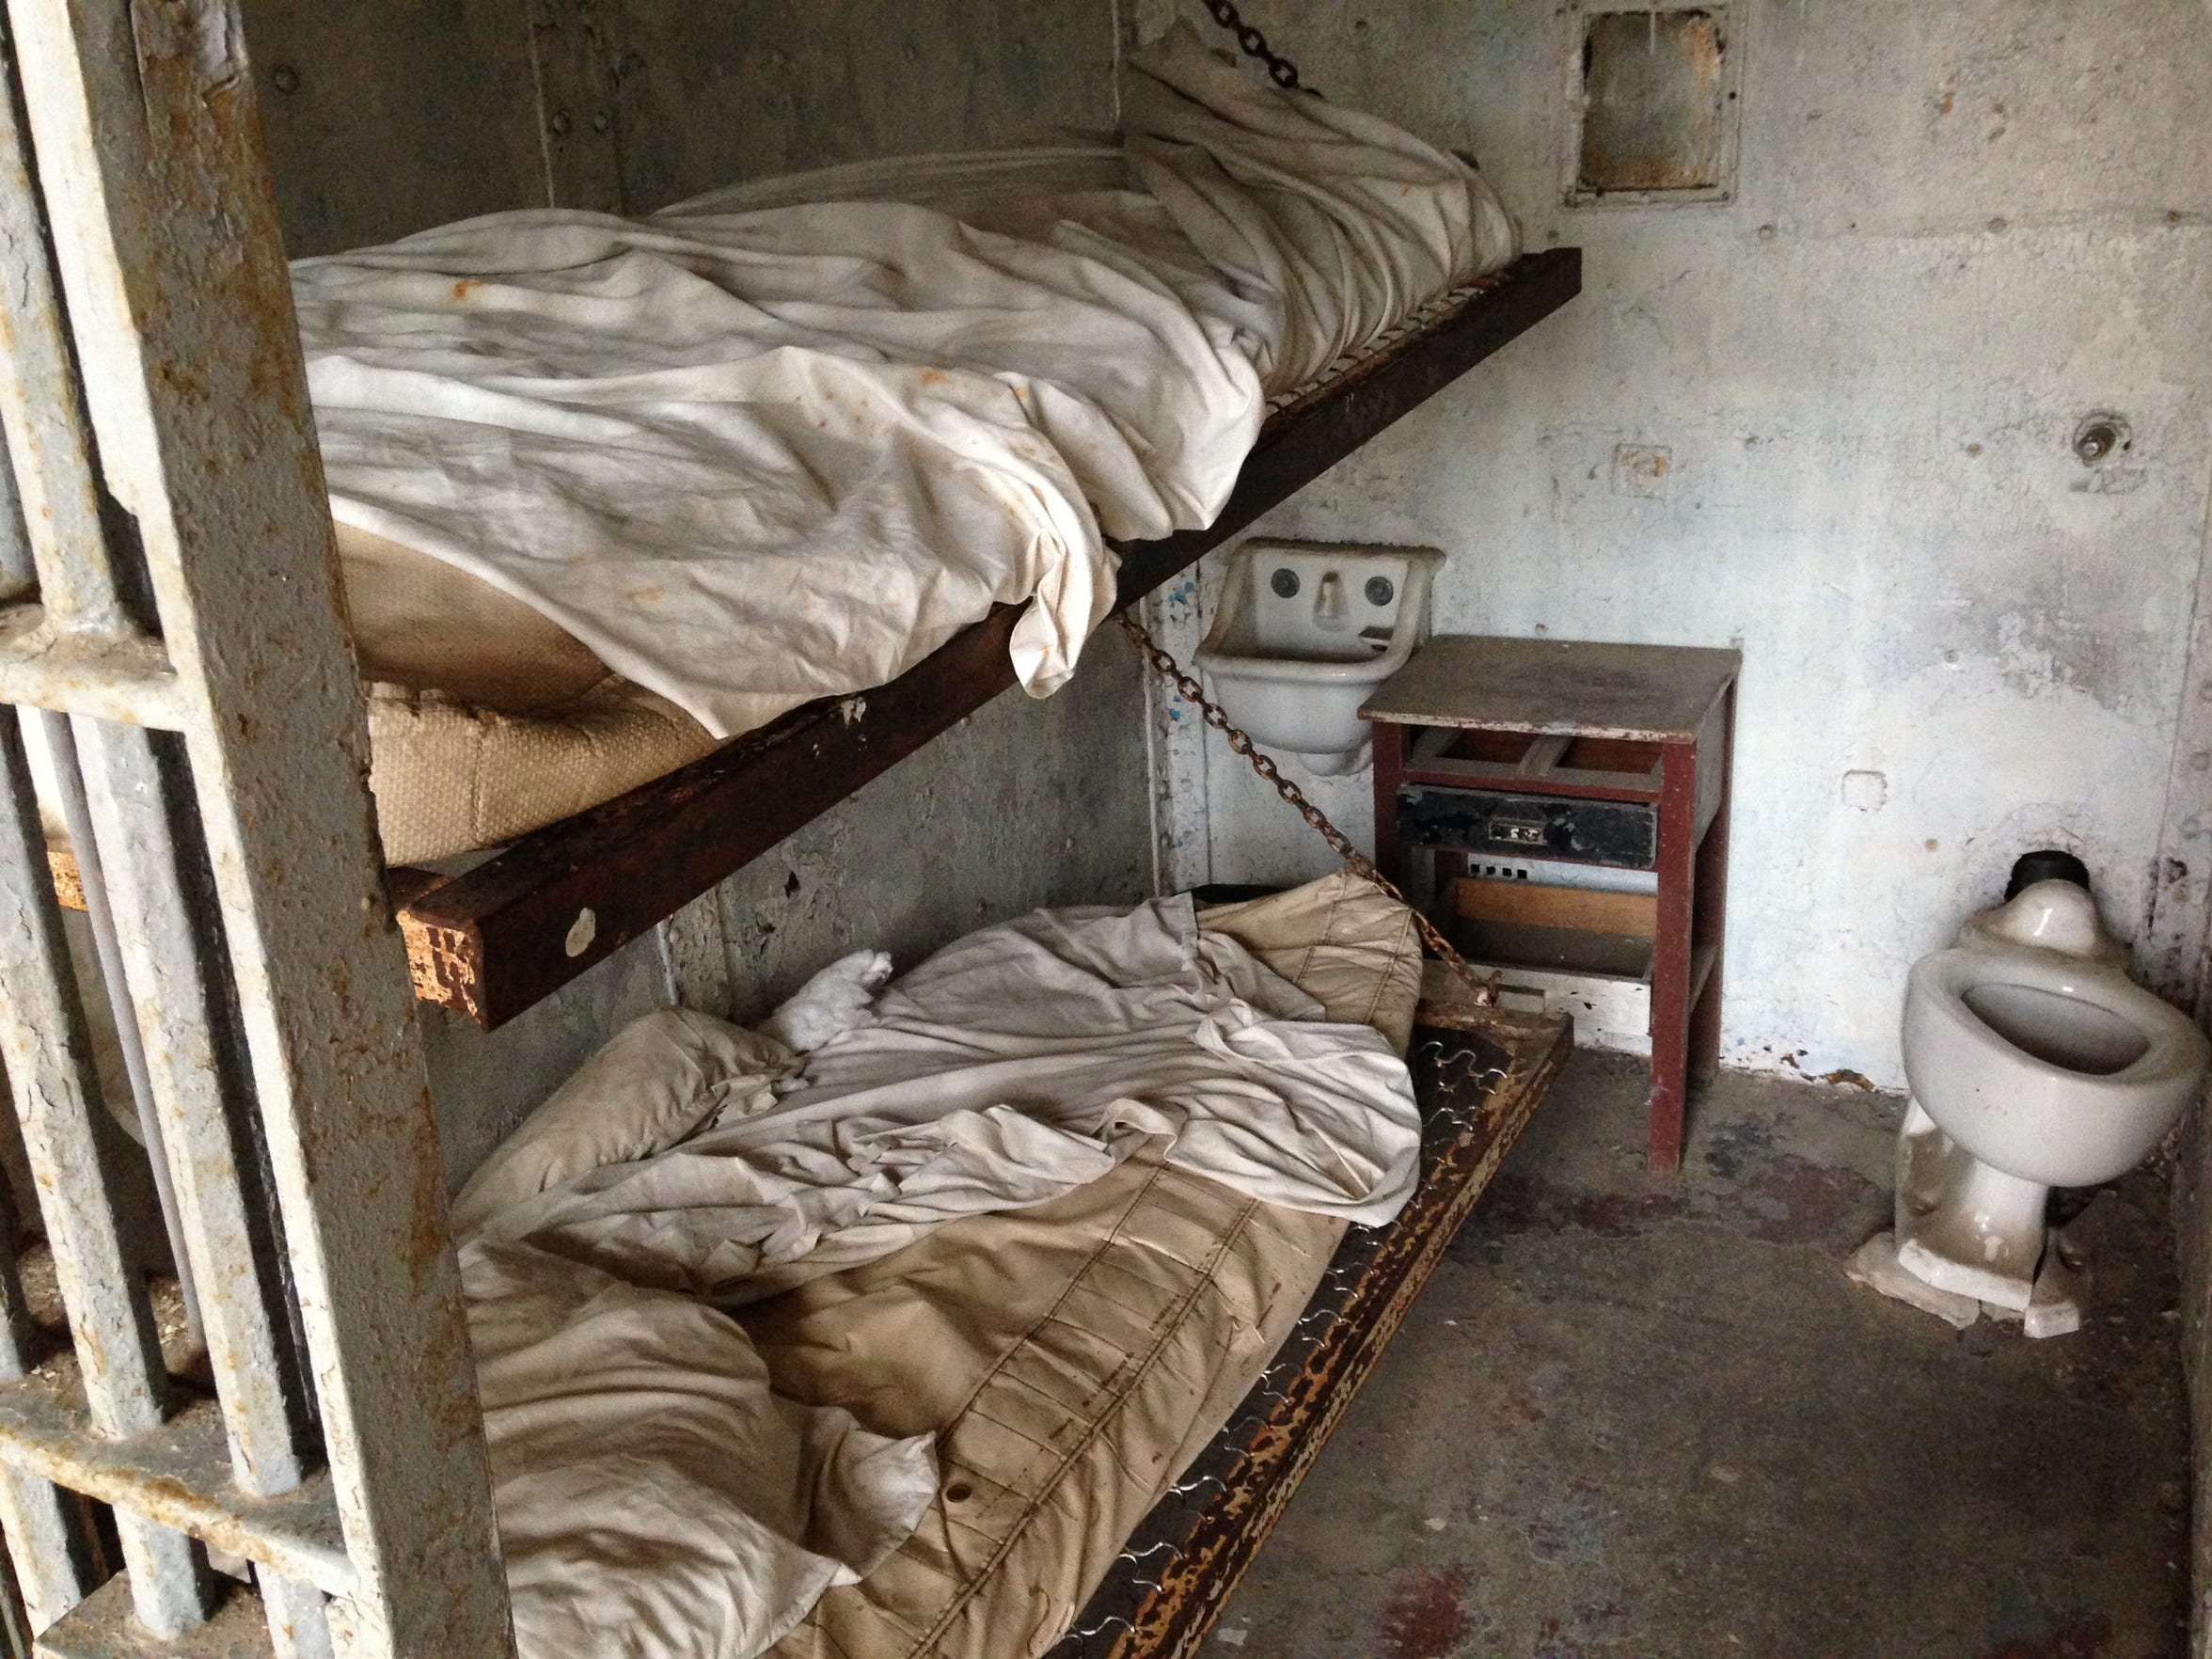 A prison cell at the Ohio State Reformatory in Mansfield.